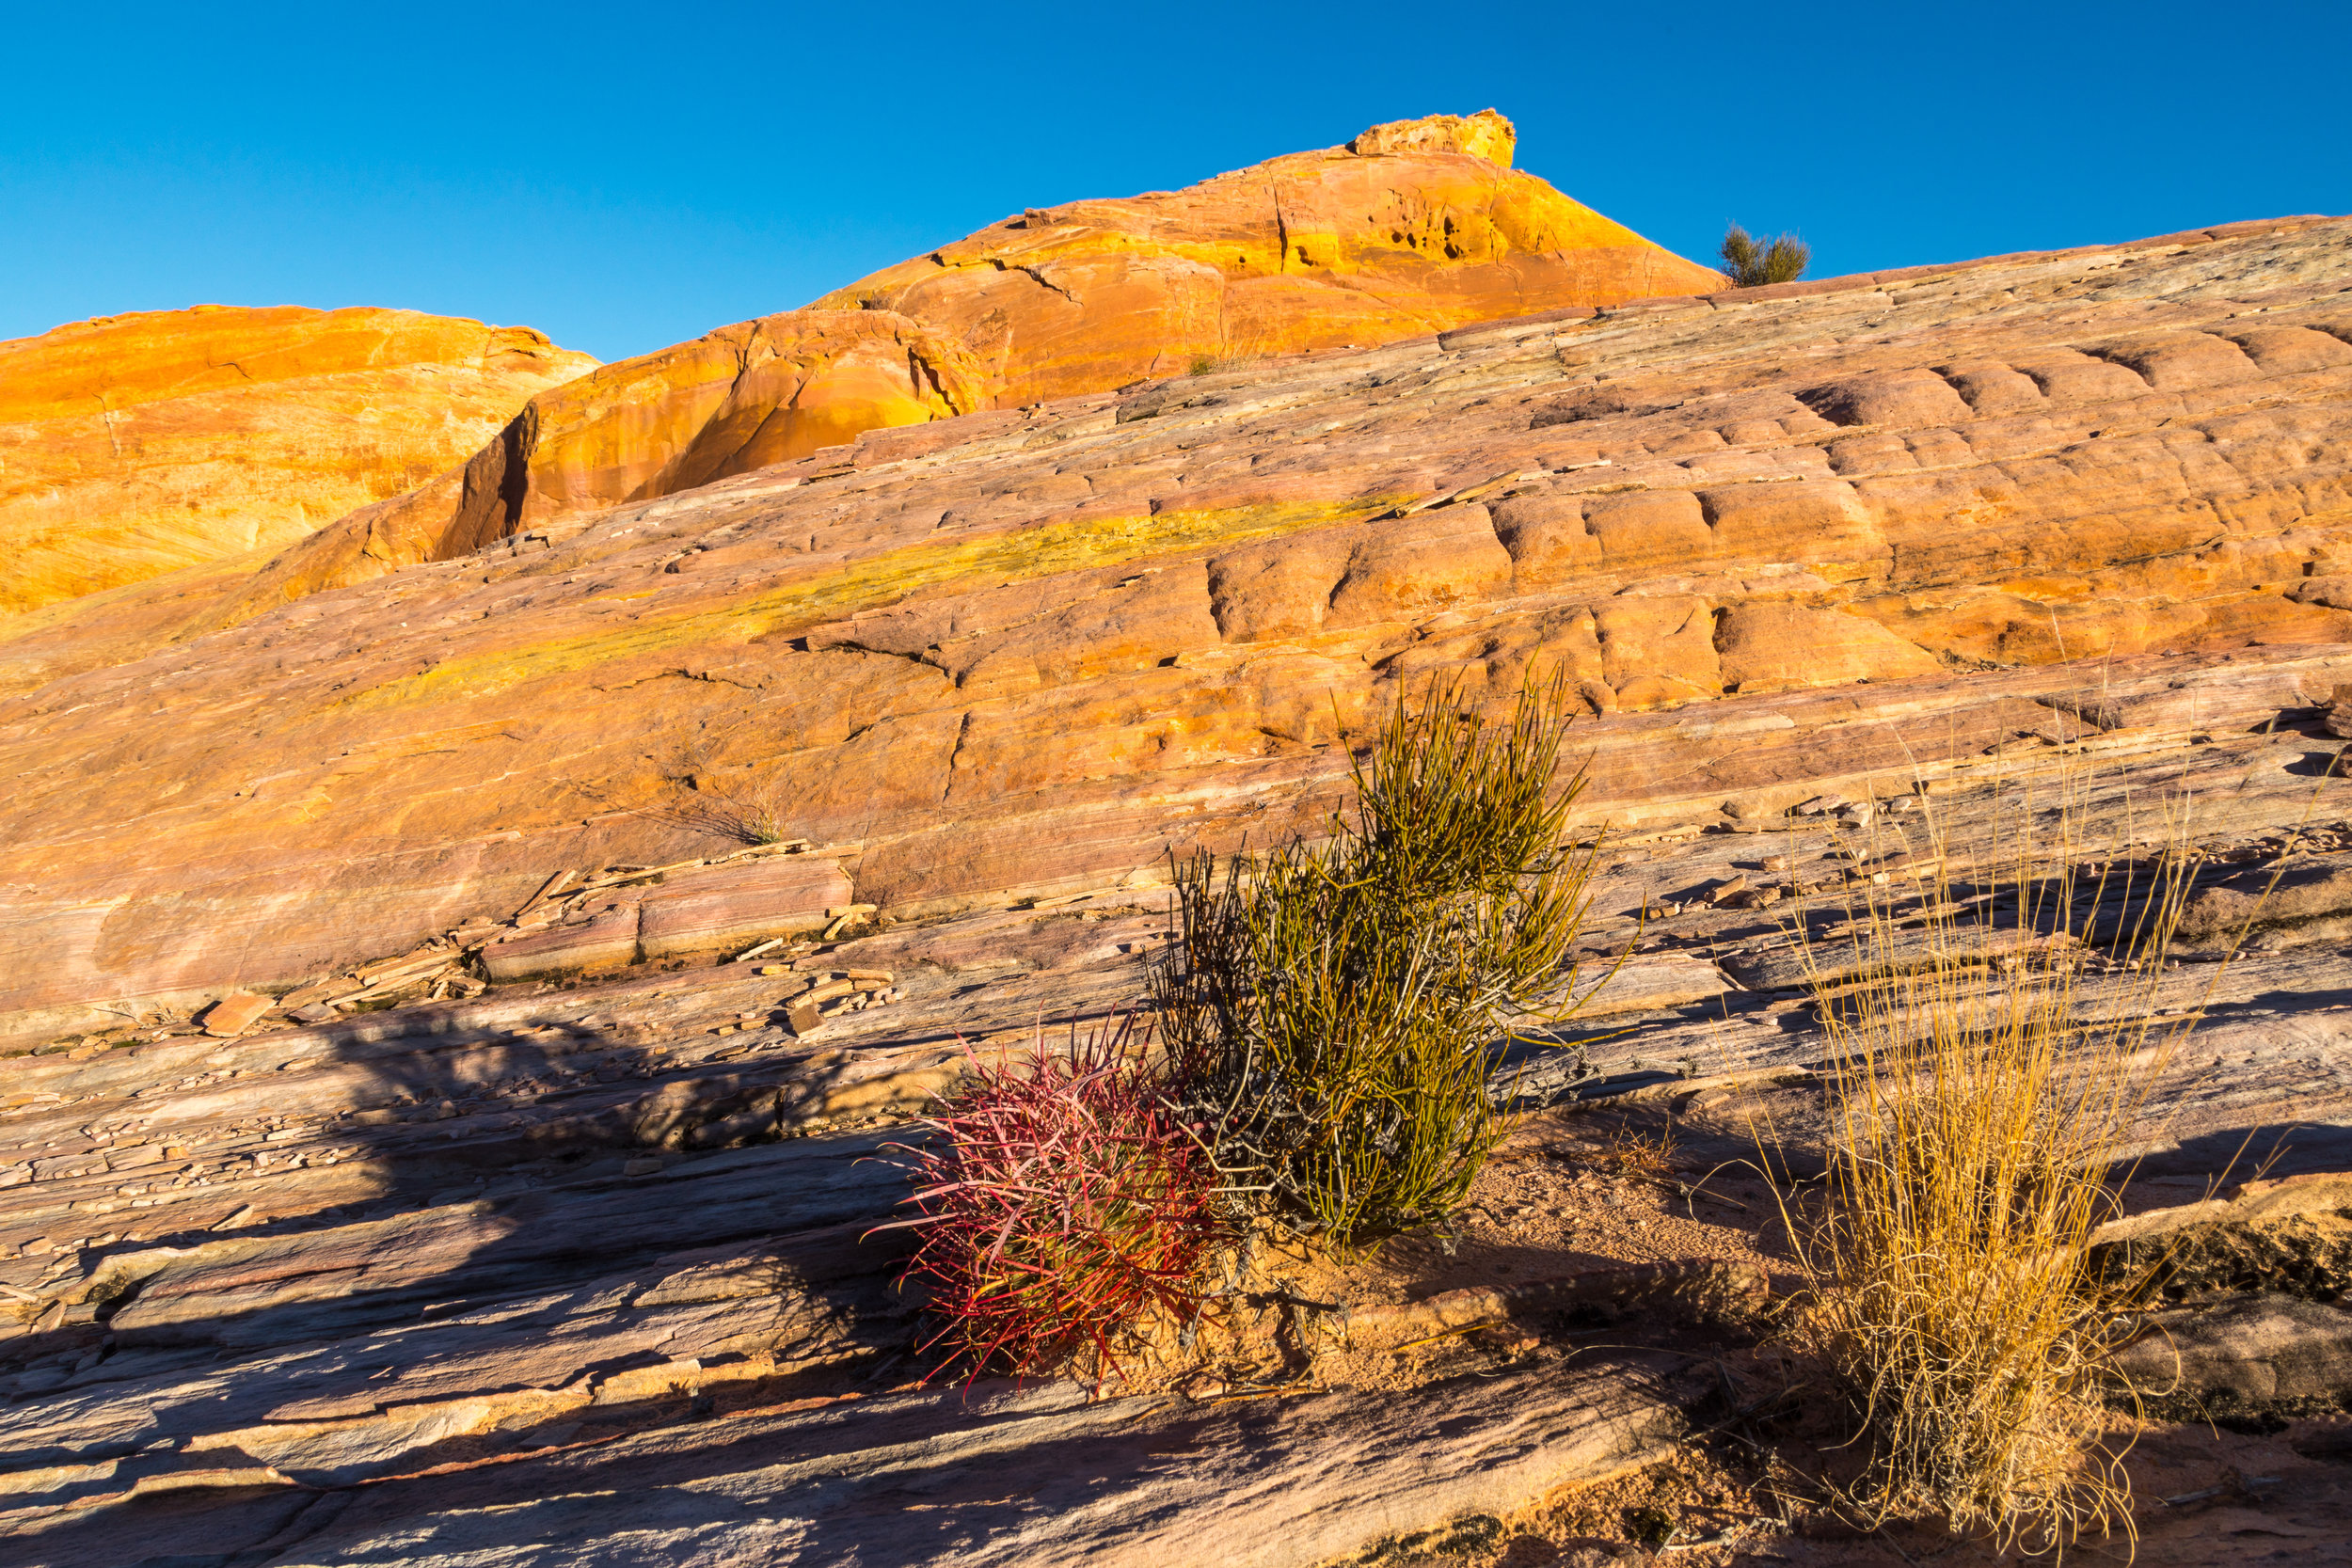 Valley of Fire, Image # 2104